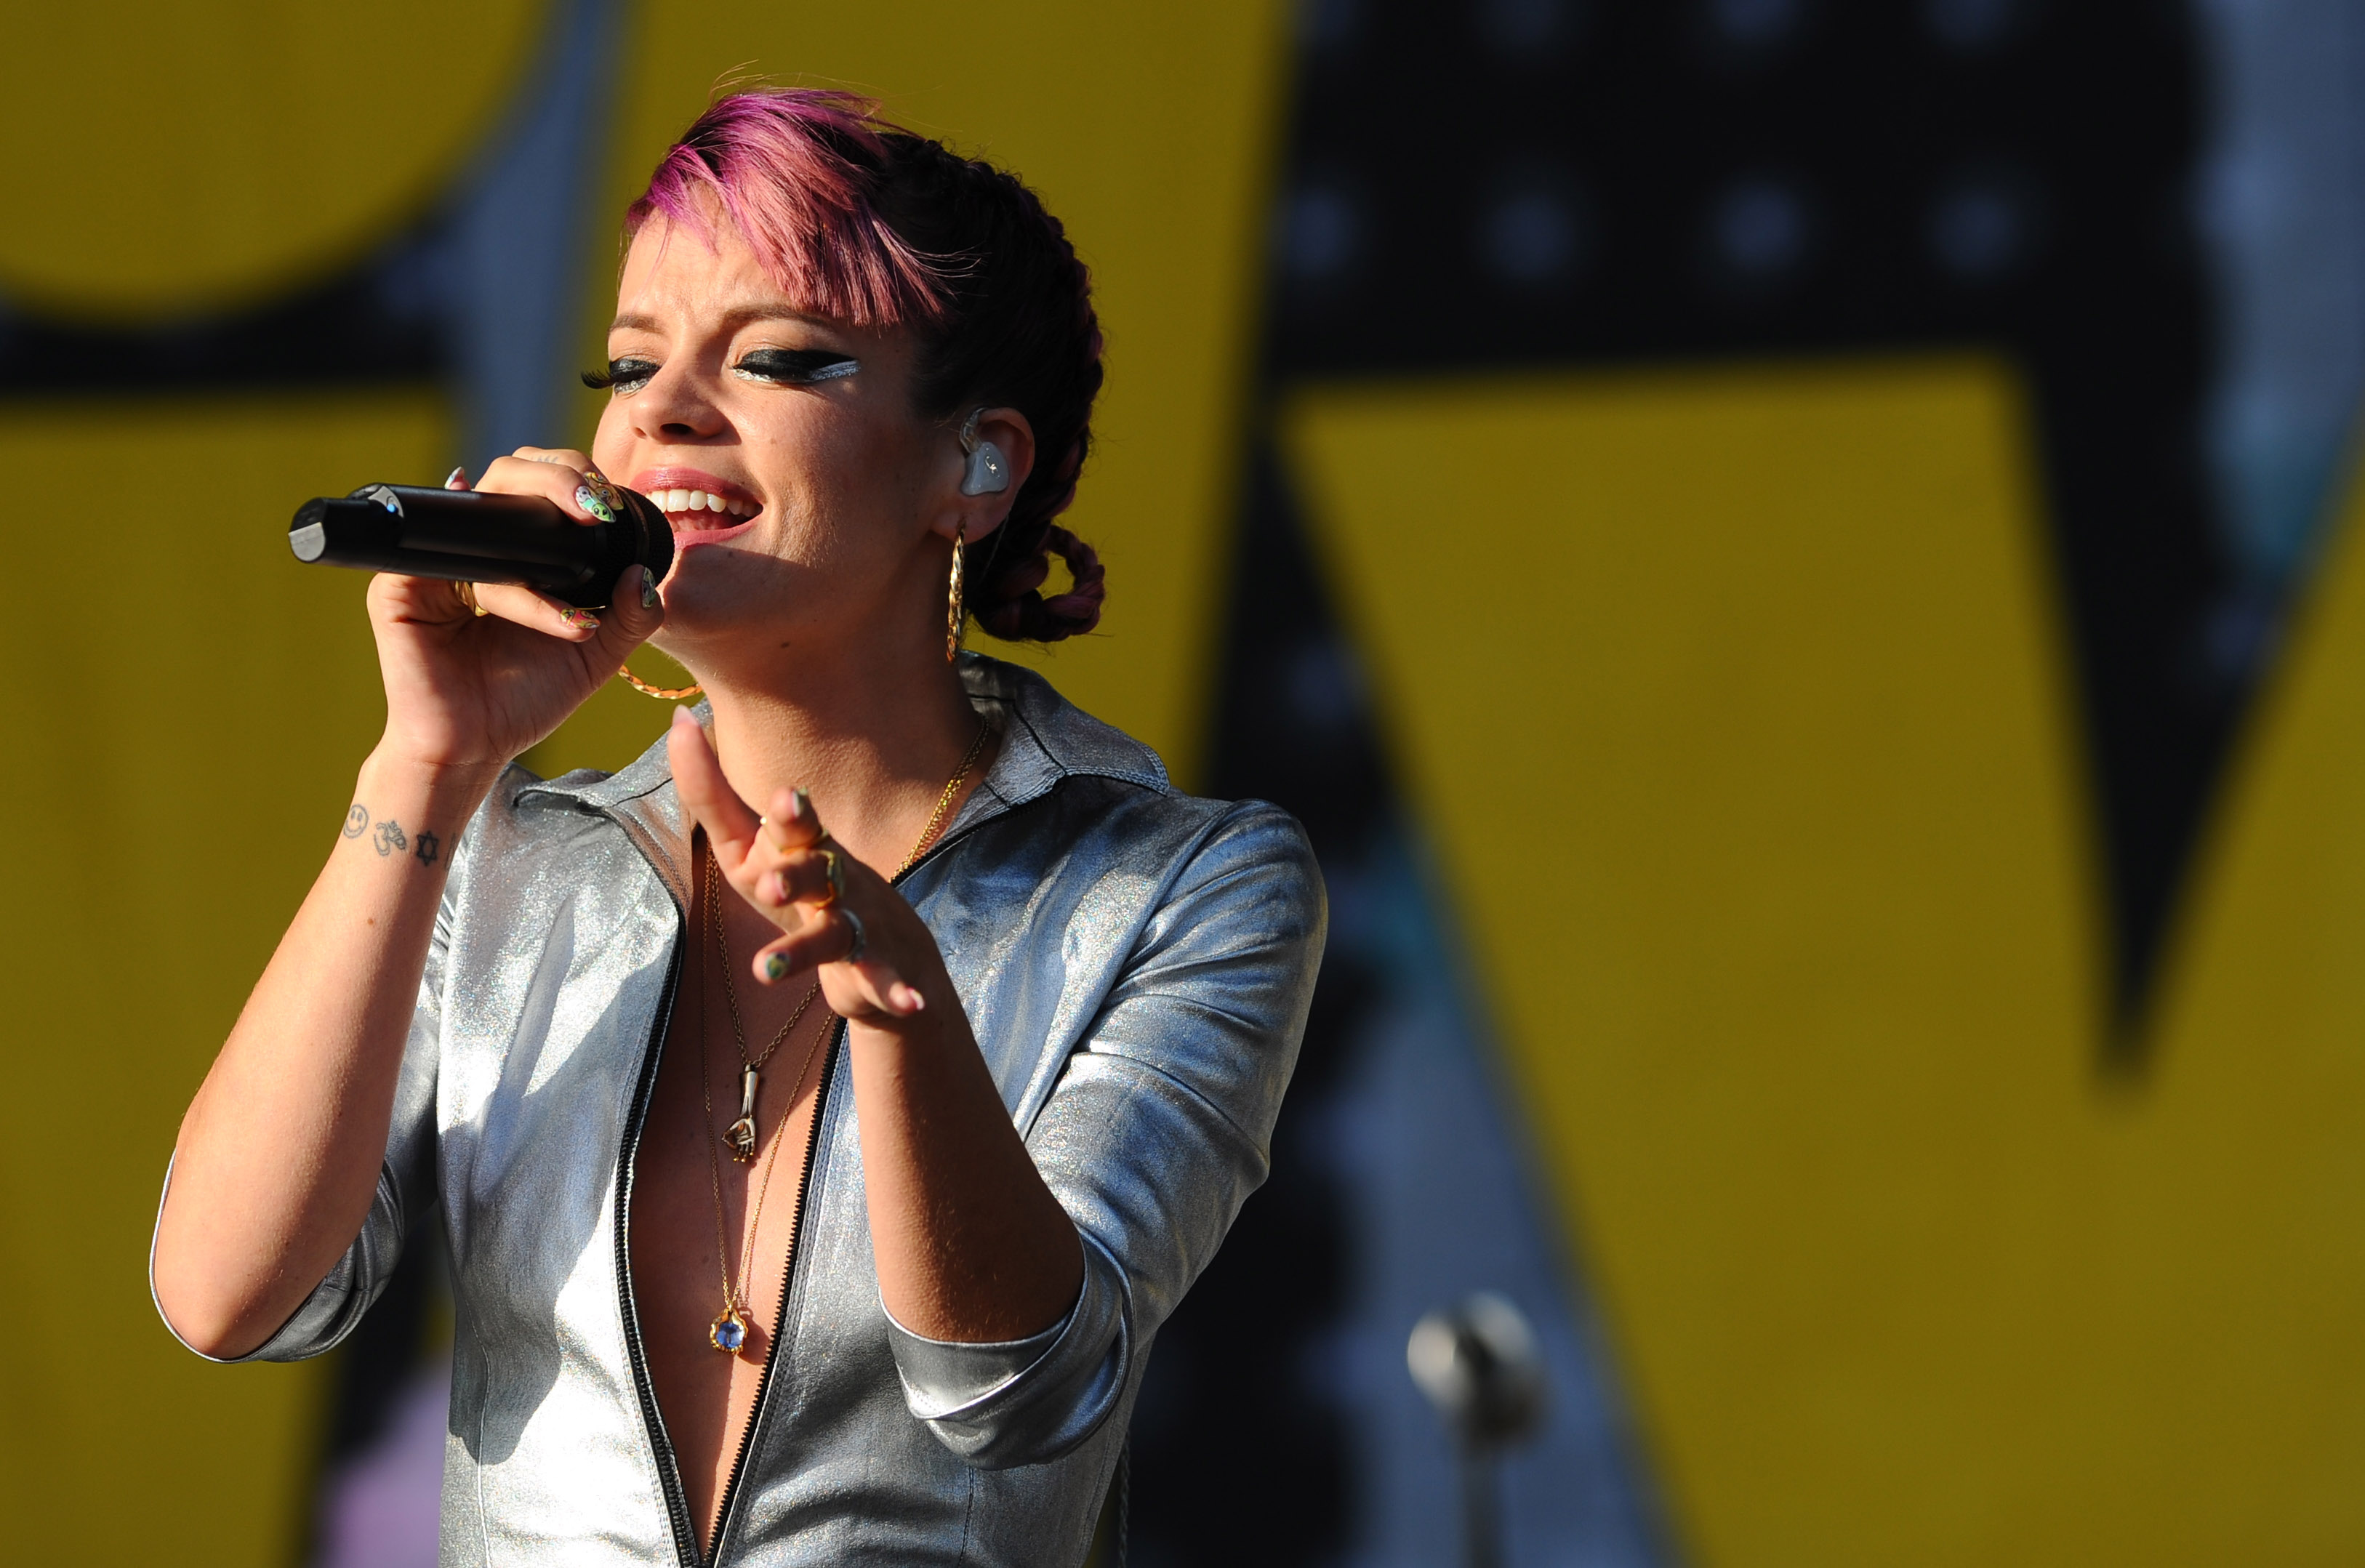 Lily Allen faces wrath after tweet calling for football to be banned for kids